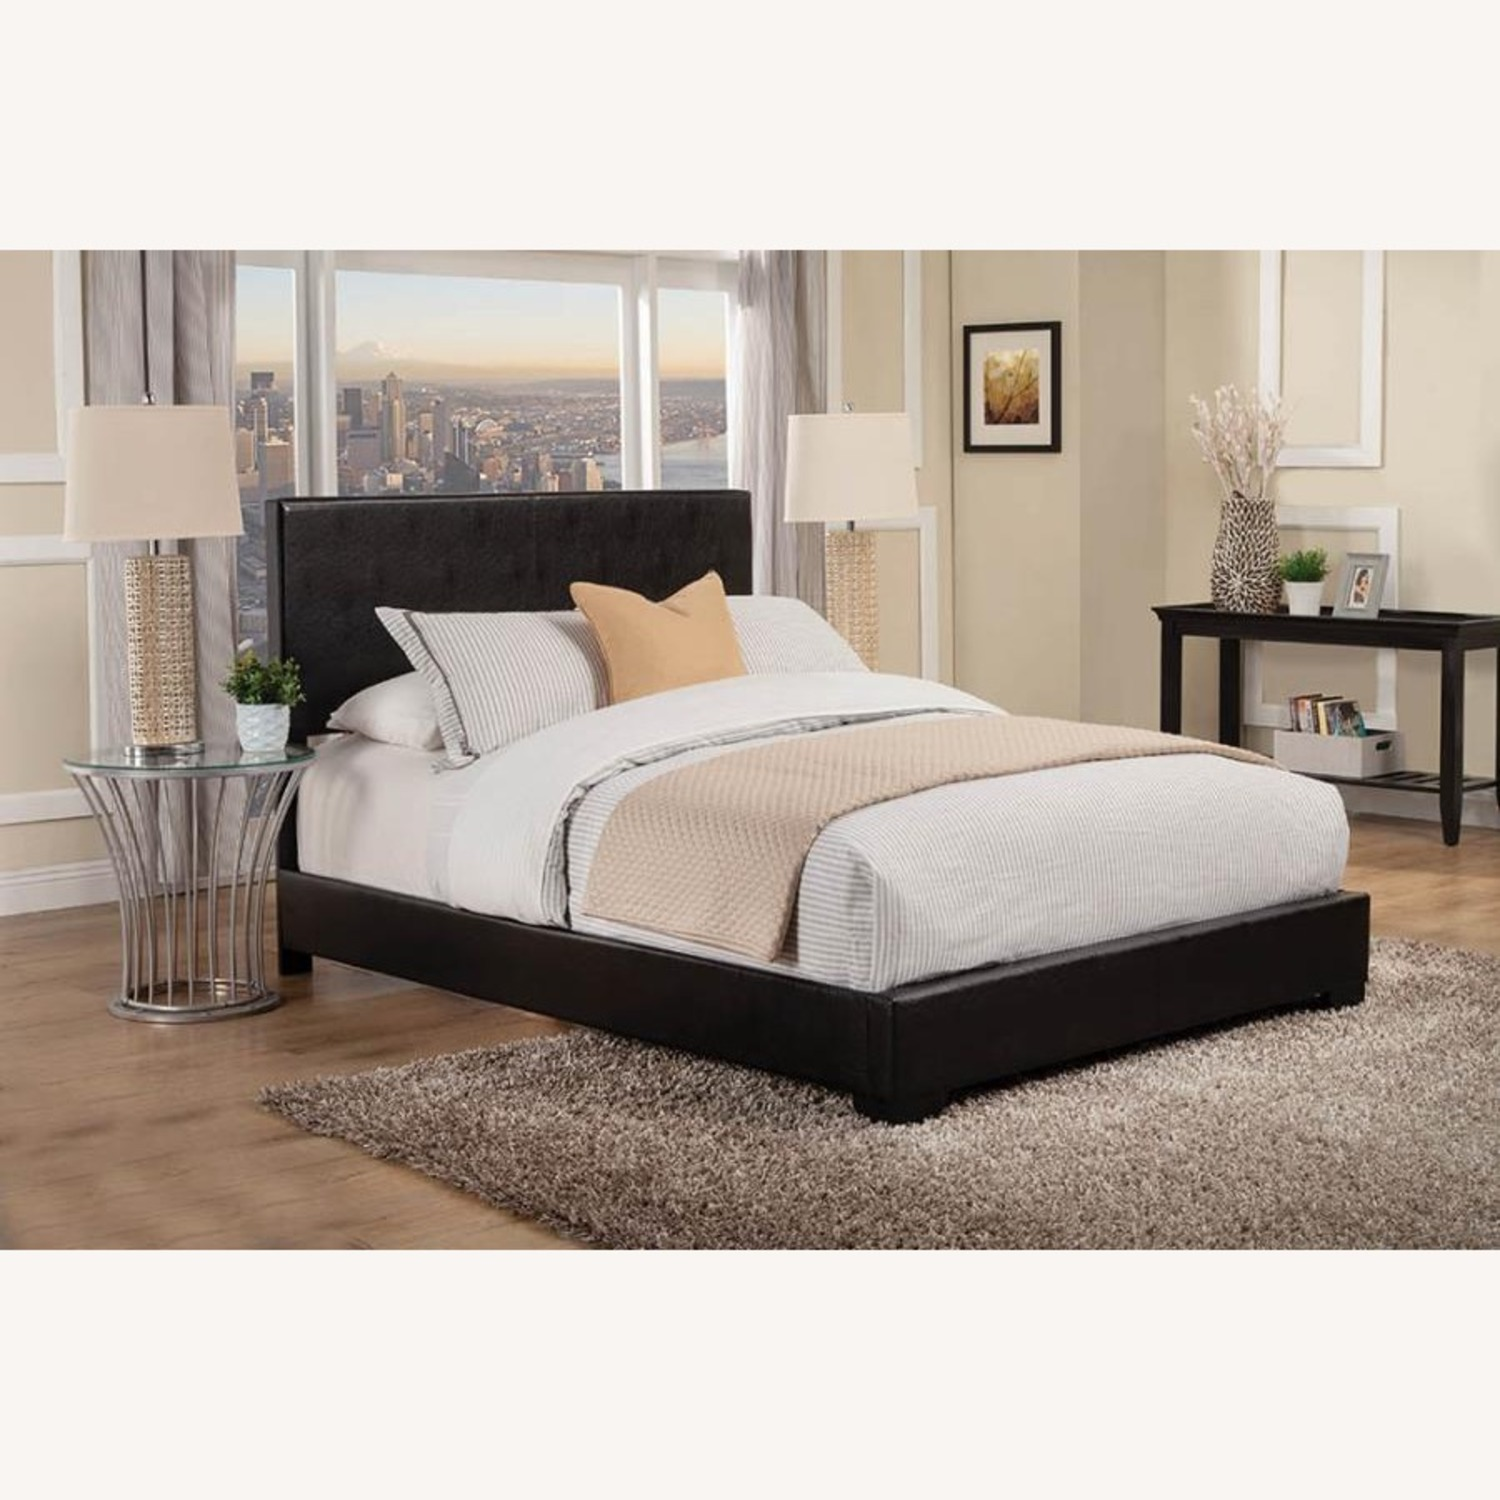 Queen Bed In Black Leatherette W/ Hardwood Legs - image-3